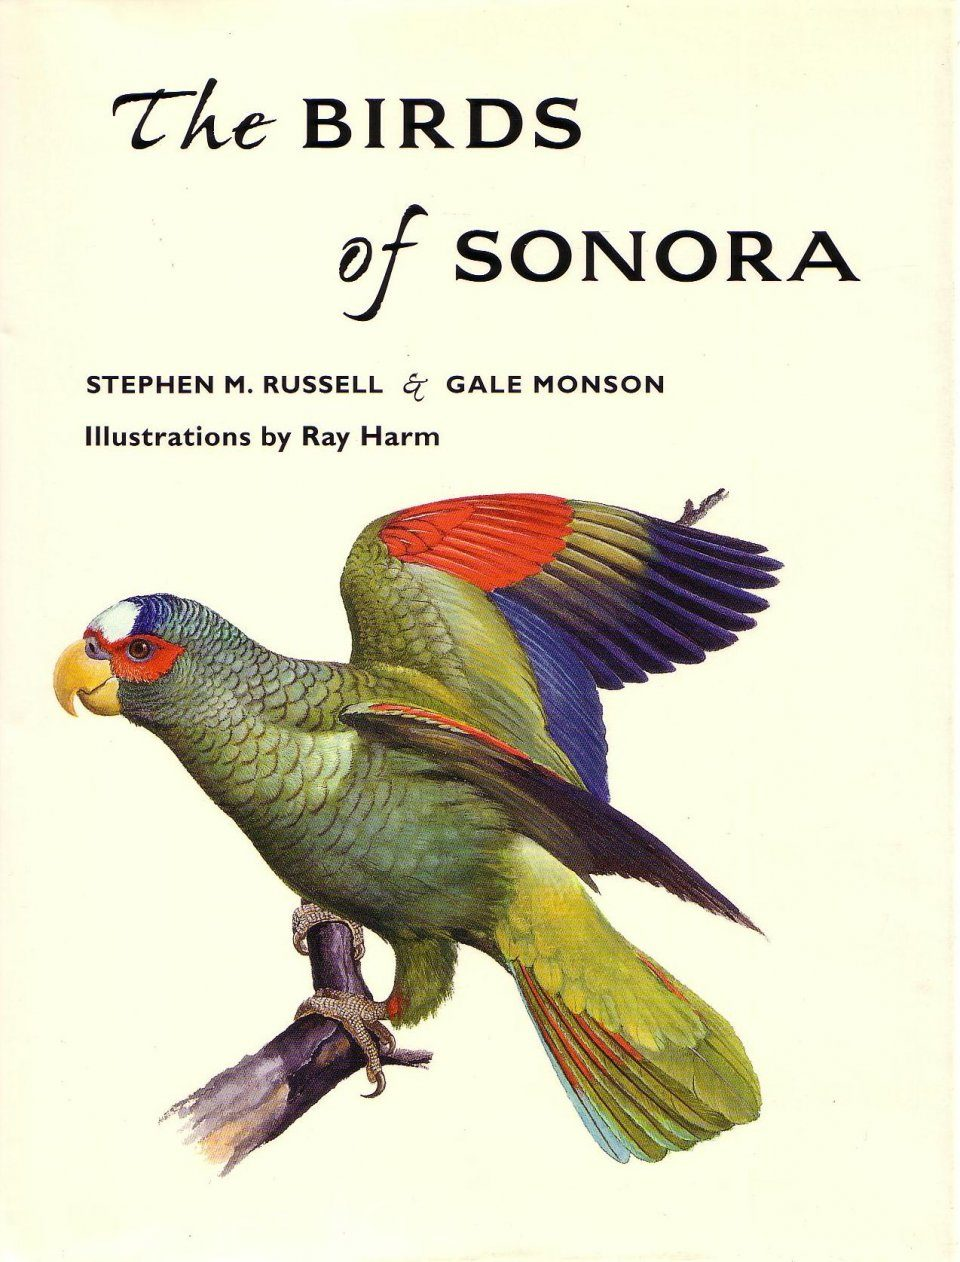 The Birds of Sonora